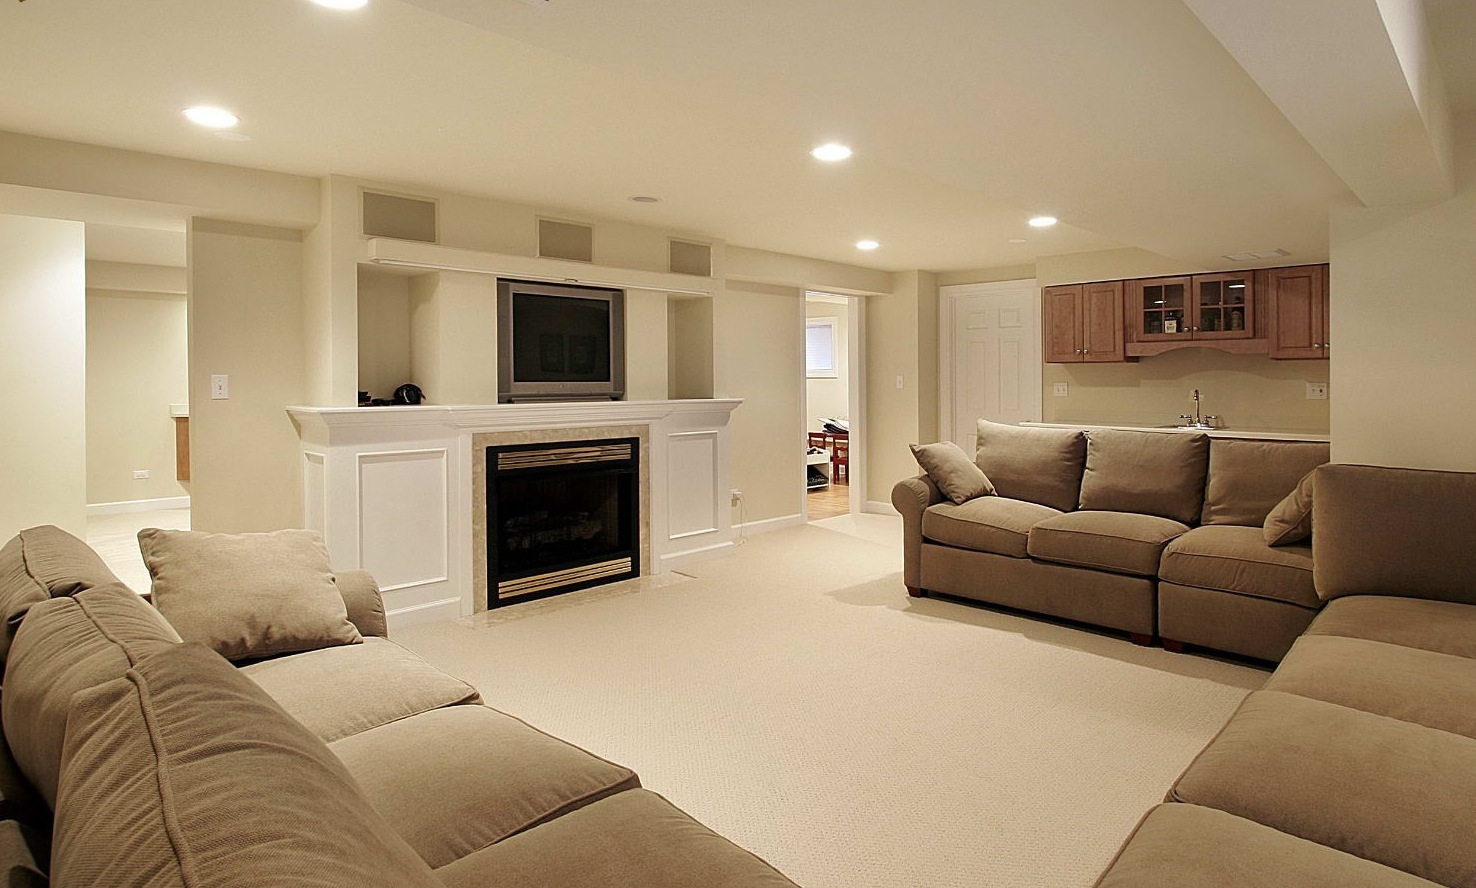 Basement Family Room Design Ideas 30 Basement Remodeling Ideas & Inspiration